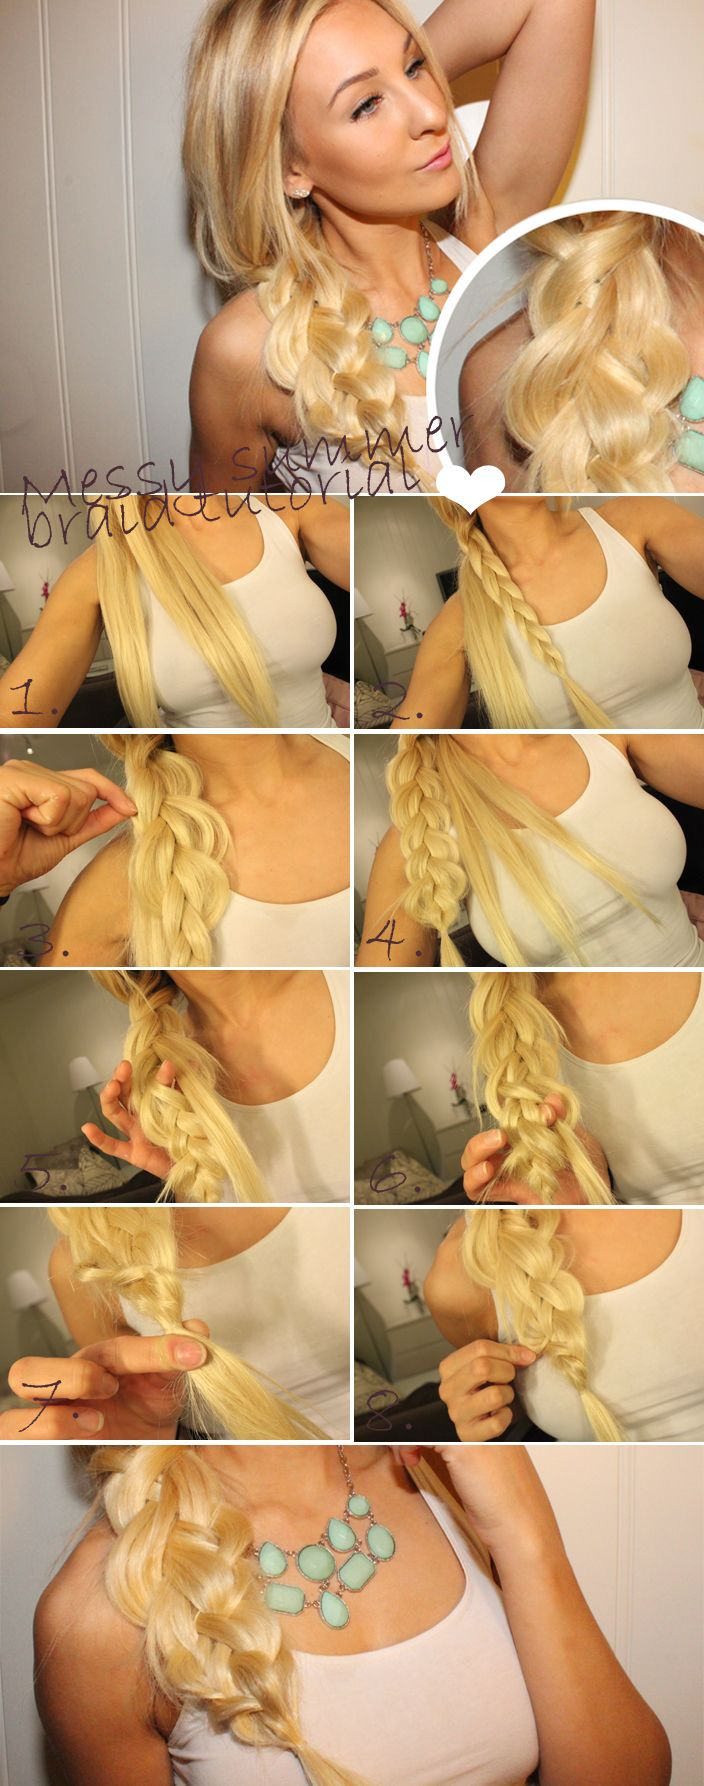 Cute! Can't wait until my hair is this long